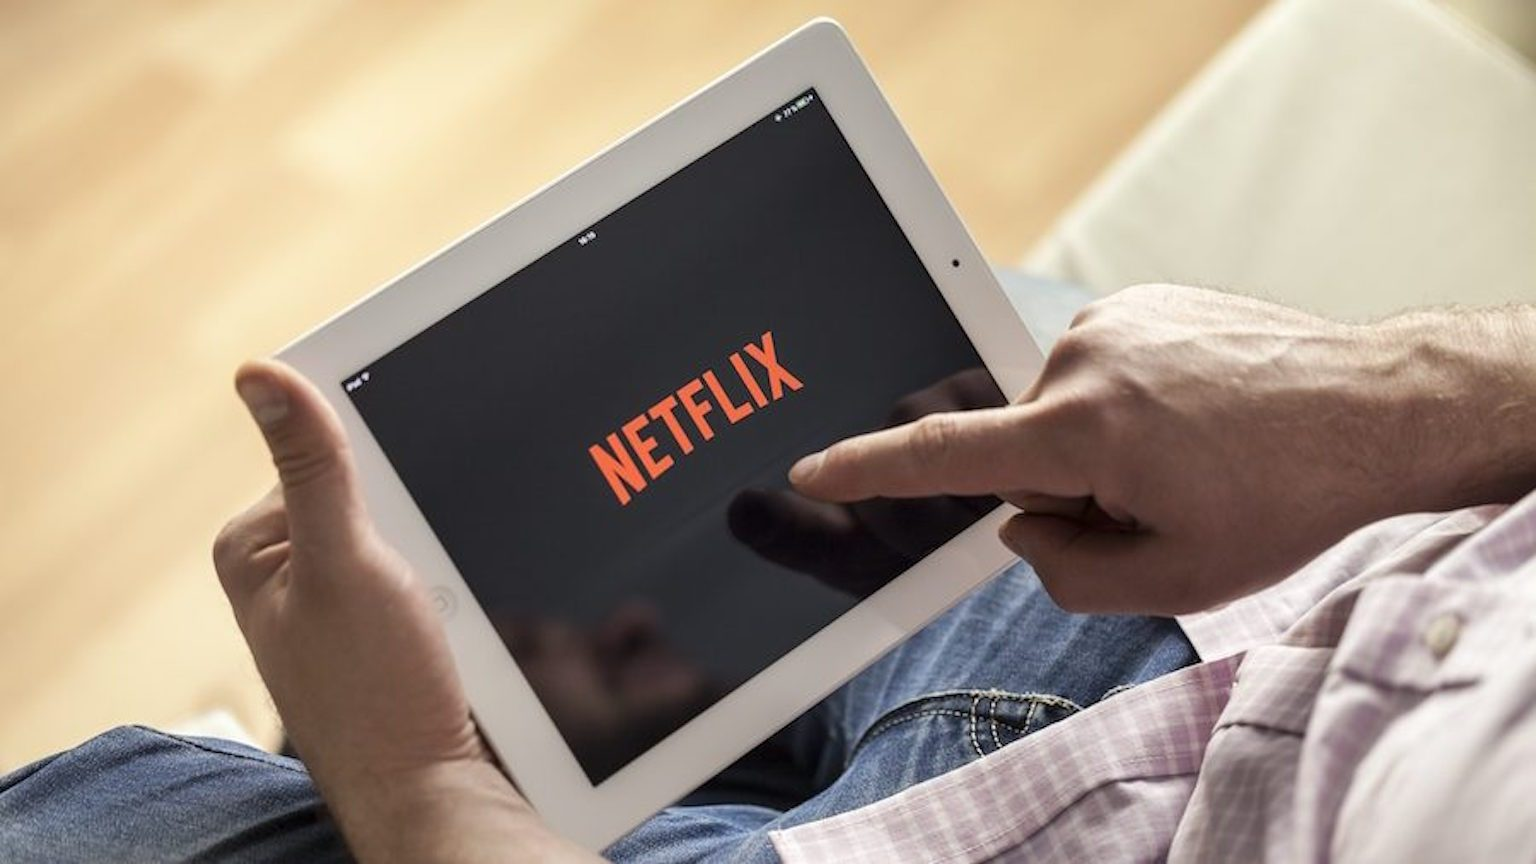 Man watching Netflix on tablet